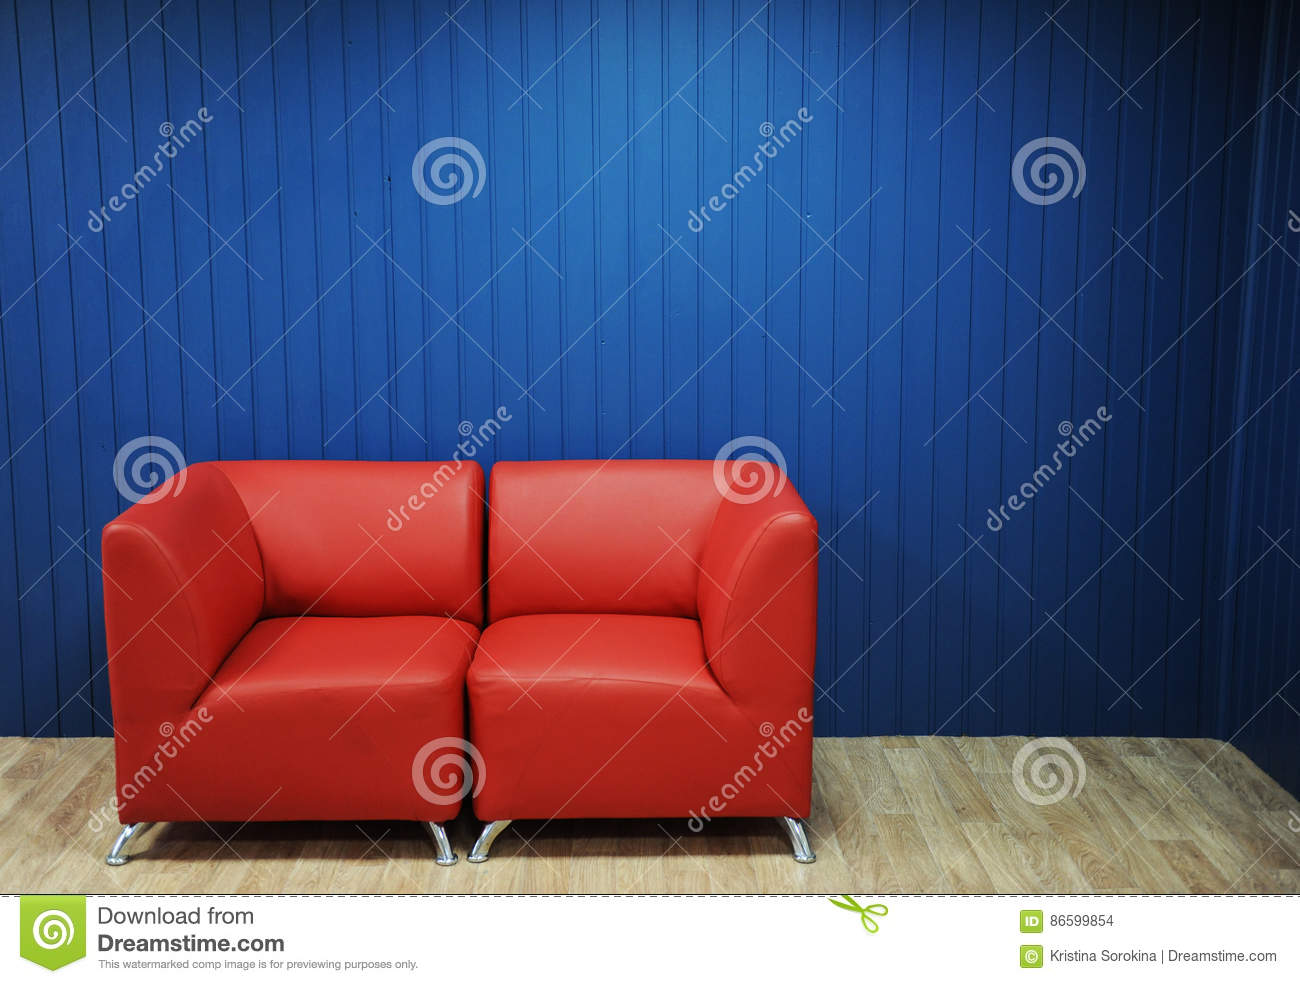 Sensational Red Leather Sofa On A Background Of Blue Walls Texture For Ibusinesslaw Wood Chair Design Ideas Ibusinesslaworg